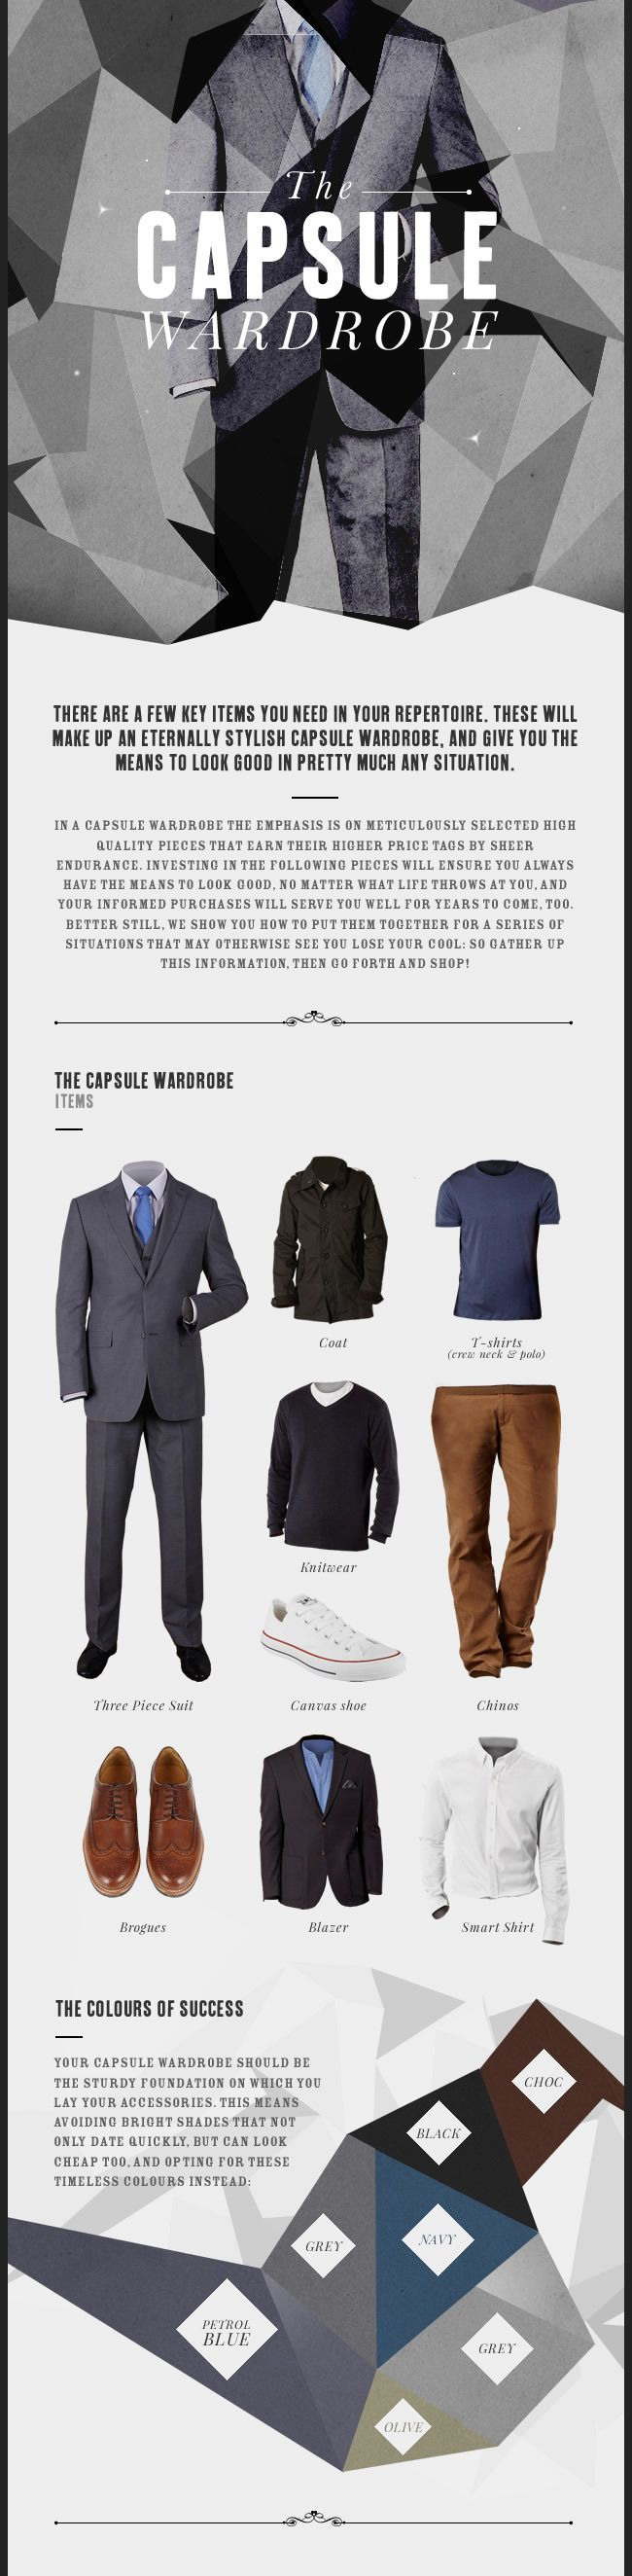 Mens leather gloves at debenhams - The Capsule Wardrobe Men S Must Have The Capsule Wardrobe Debenhams Blog